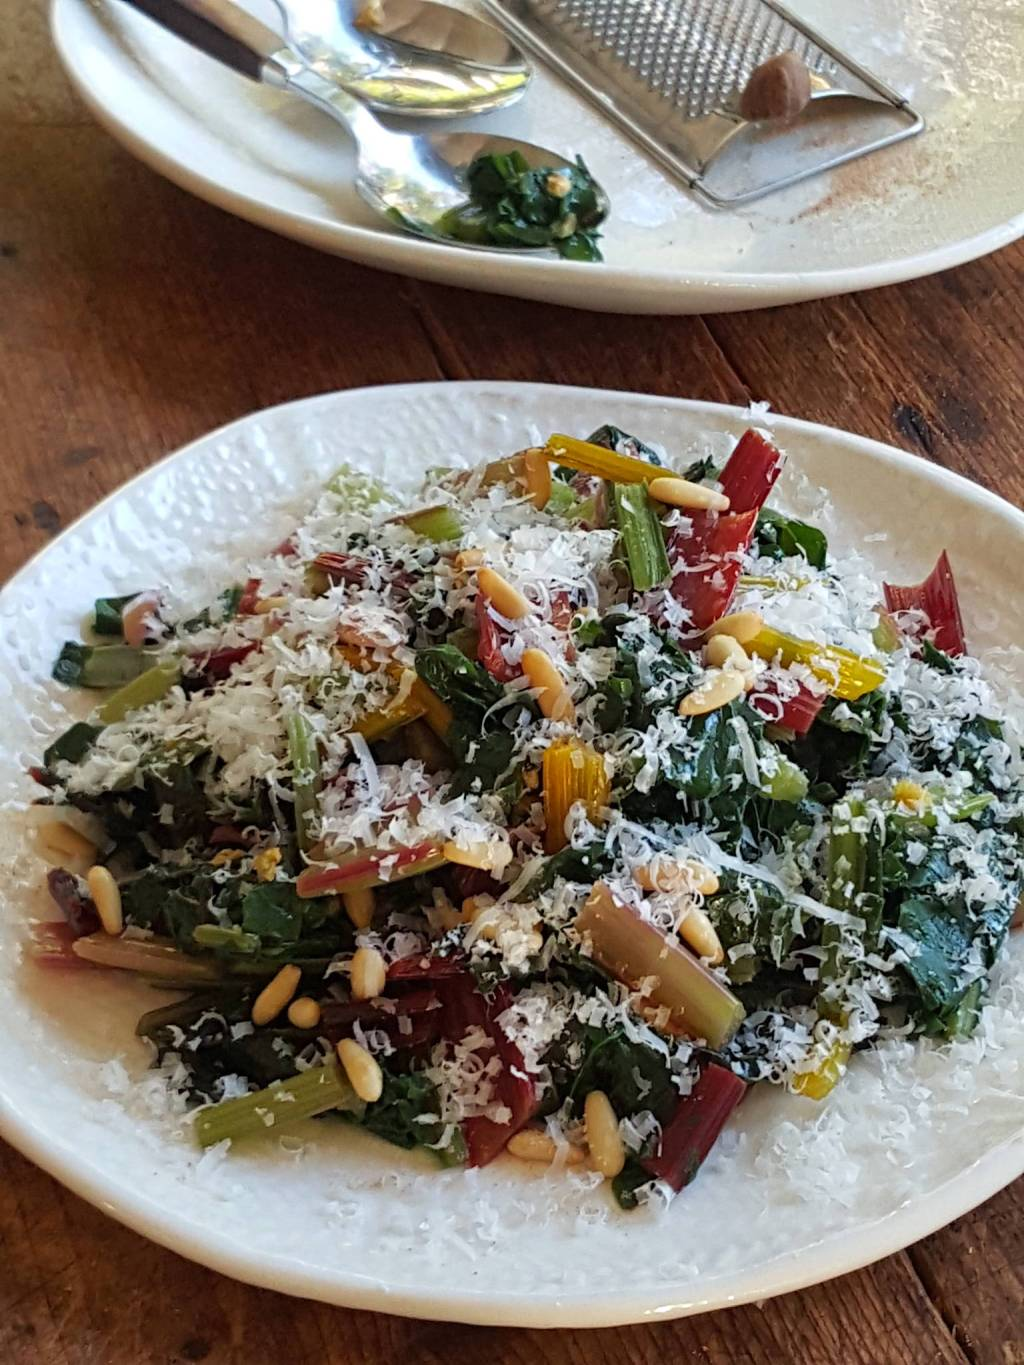 Swiss Chard with Parmesan & Pine Nuts